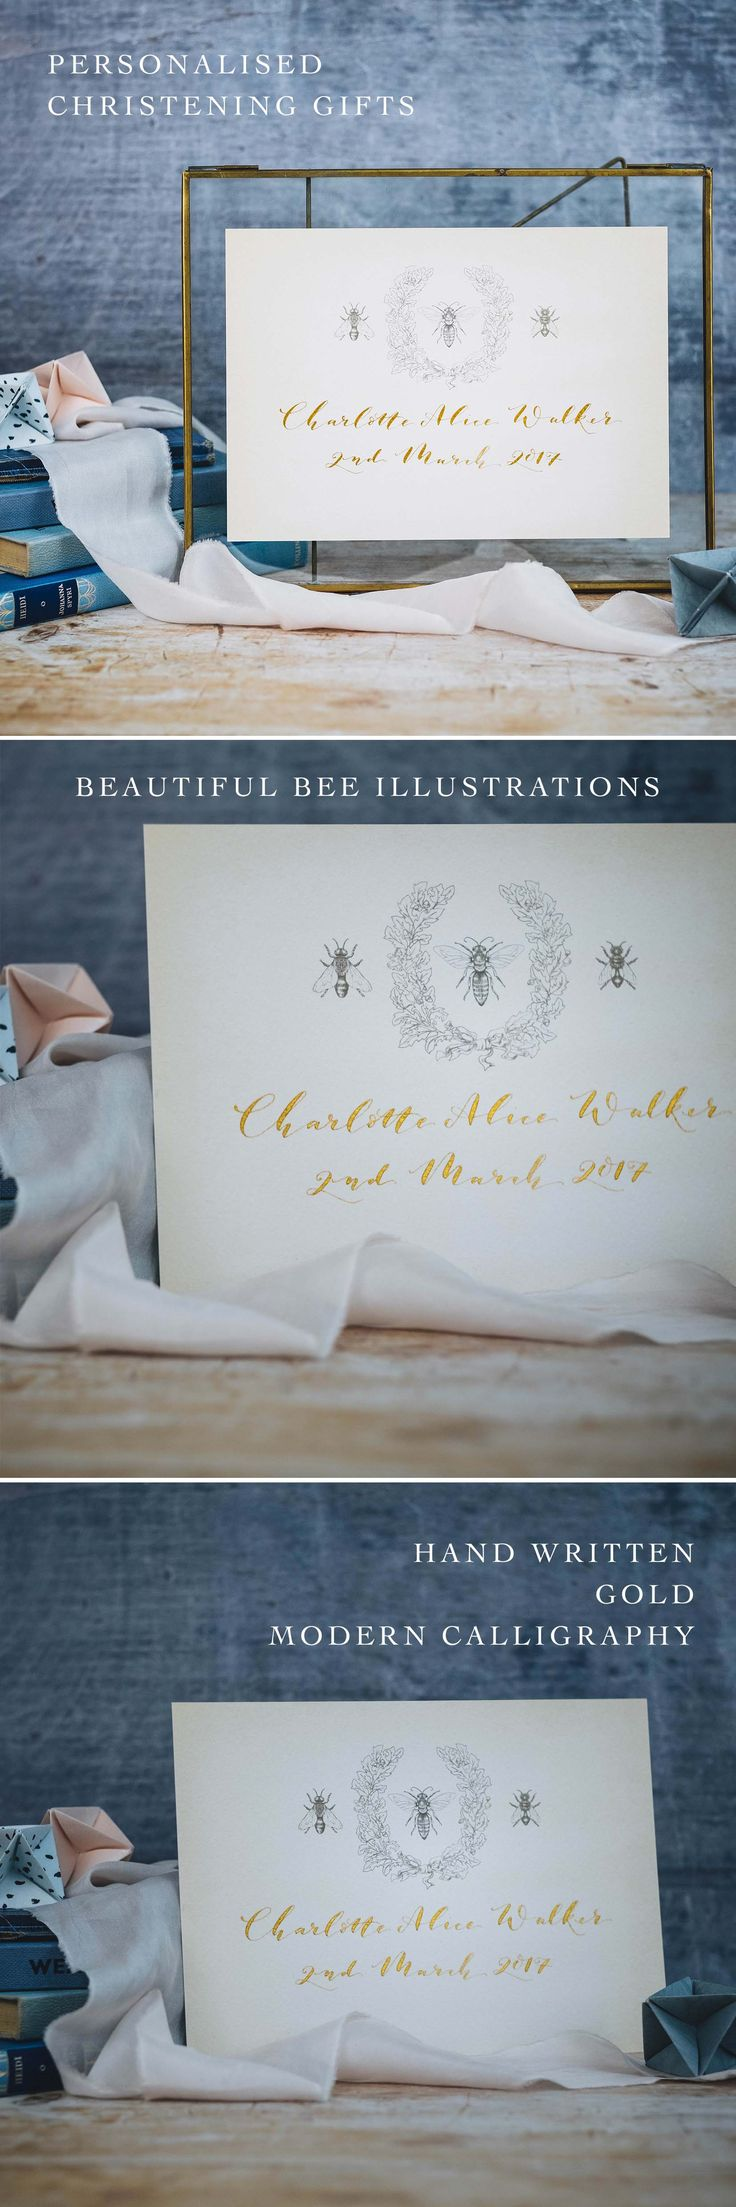 Personalised Christening Gift. Three Bee Illustrations and gold modern calligraphy. Perfect to give as a gift for a new baby or christening. Unique and personal. Available in our Not on the High Street Store.